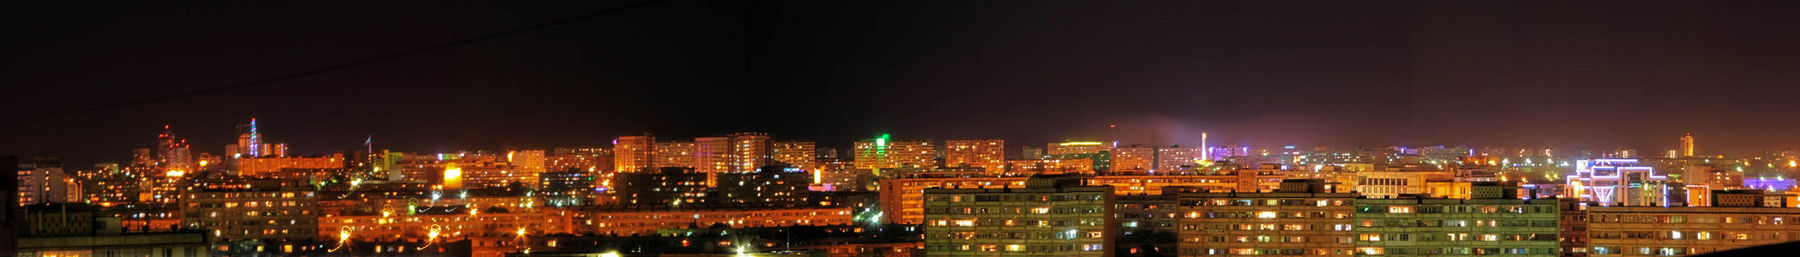 Aktau banner Night panorama.jpg